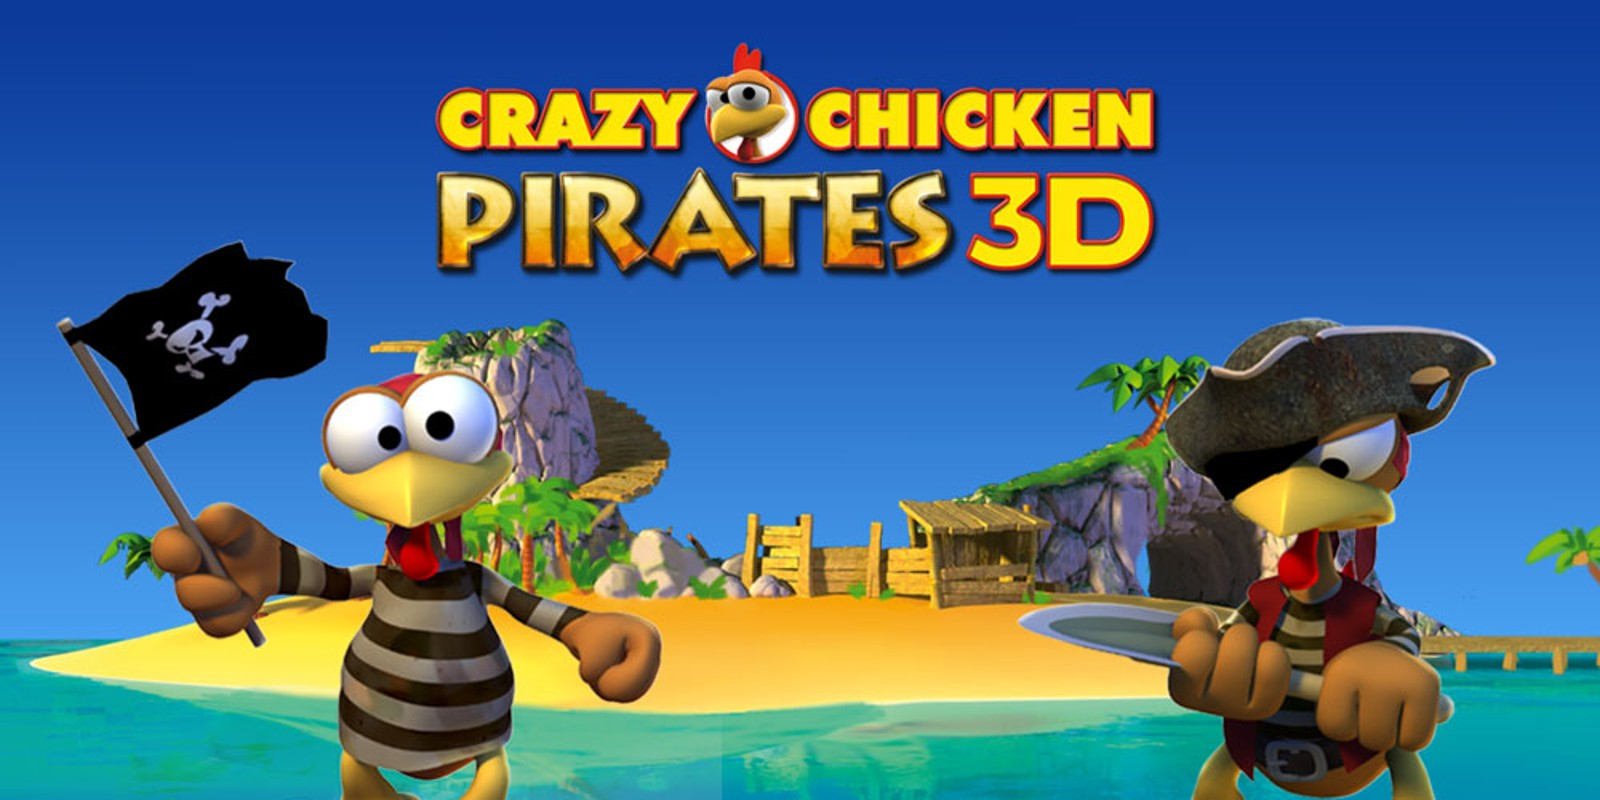 Crazy Chicken Pirates 3D